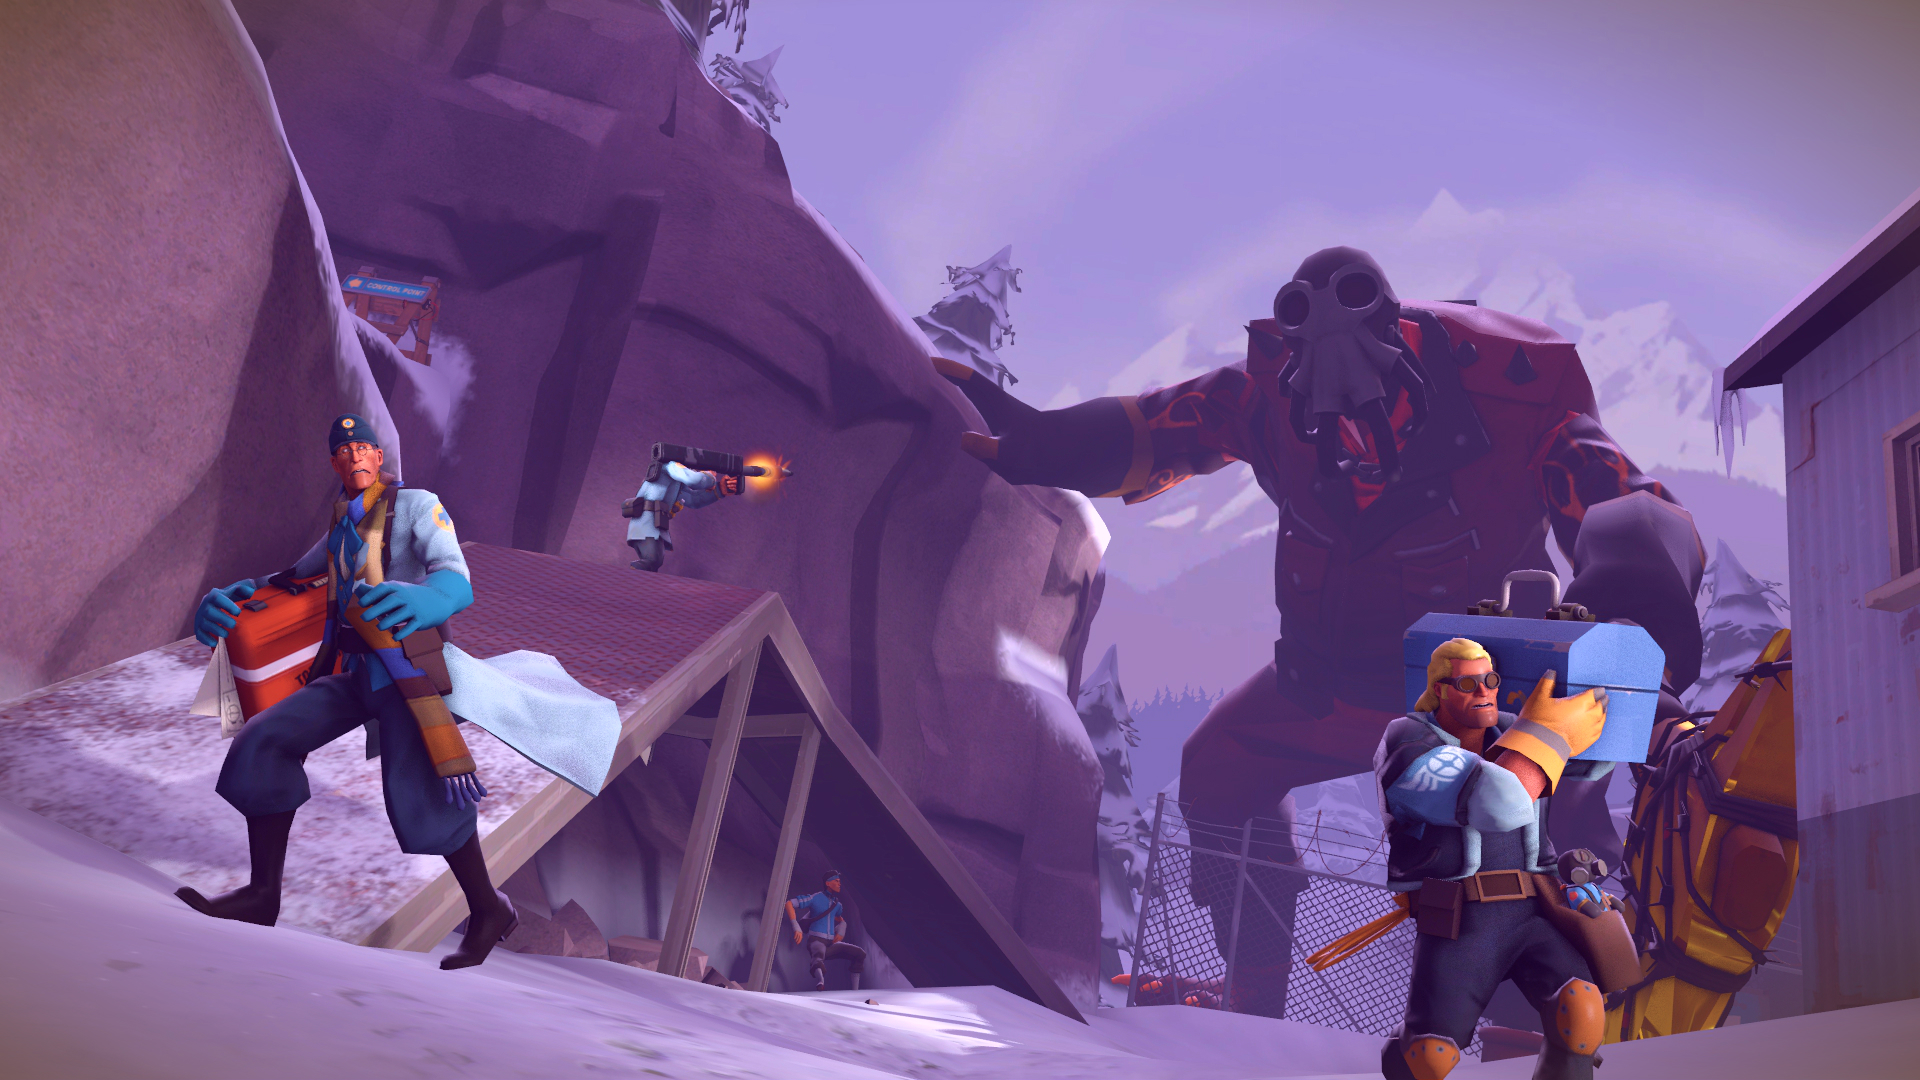 Team Fortress 2 Wallpapers, Pictures, Images